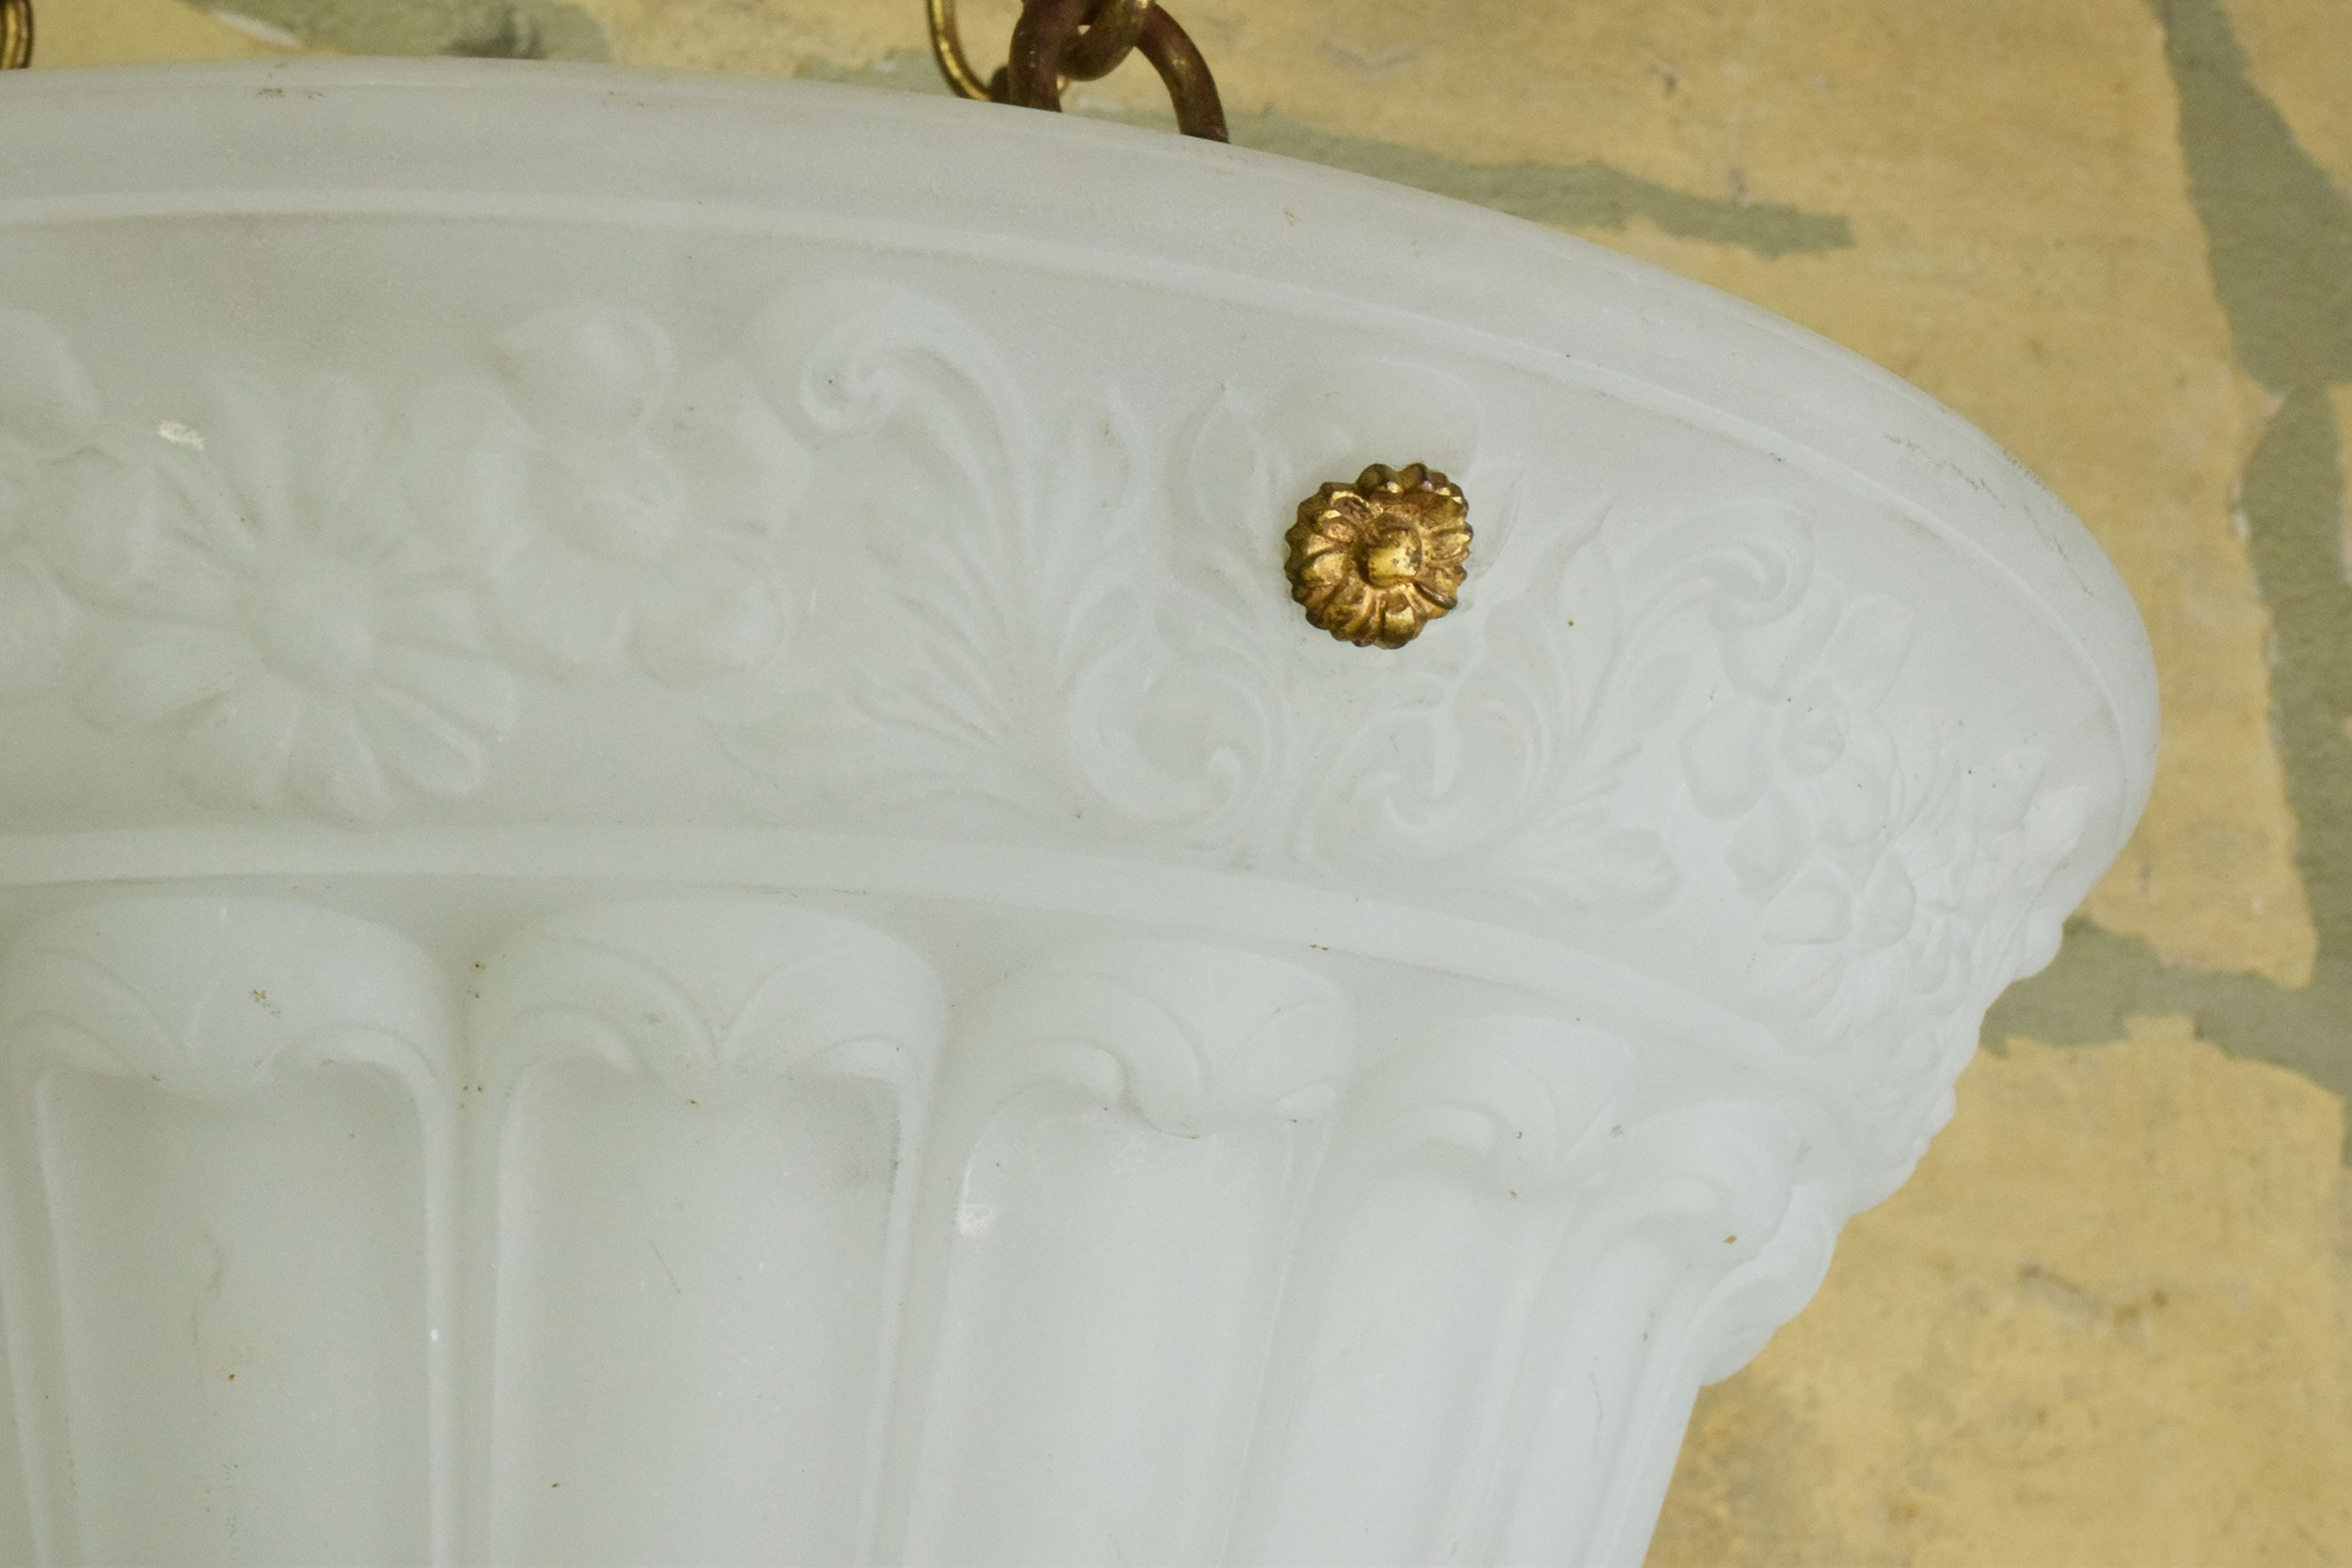 46948-molbed-glass-bowl-with-flowers-detail.jpg